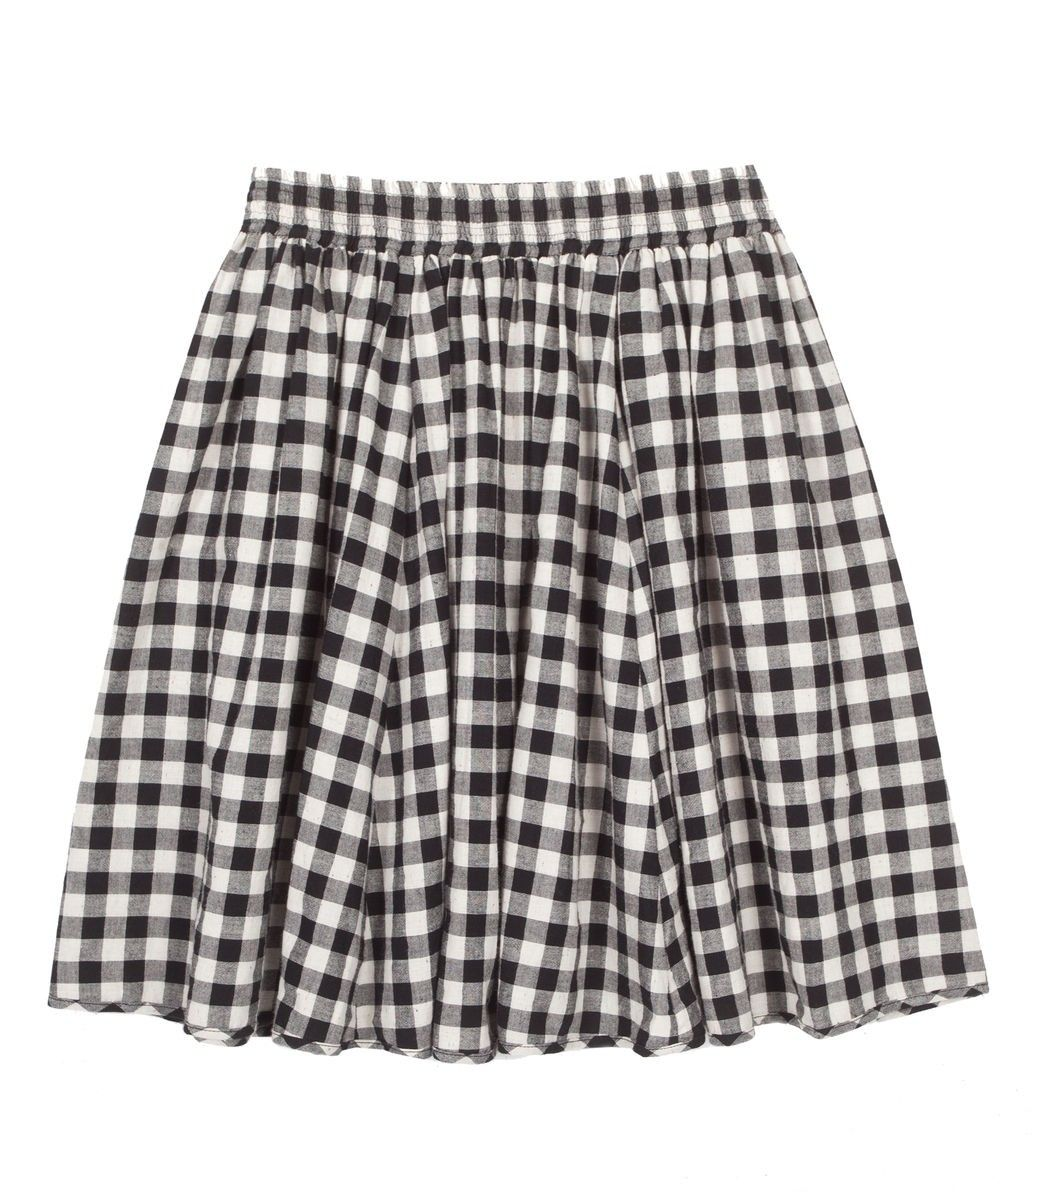 Gorman Online :: Checkity Check Yourself Skirt | Clothes ...